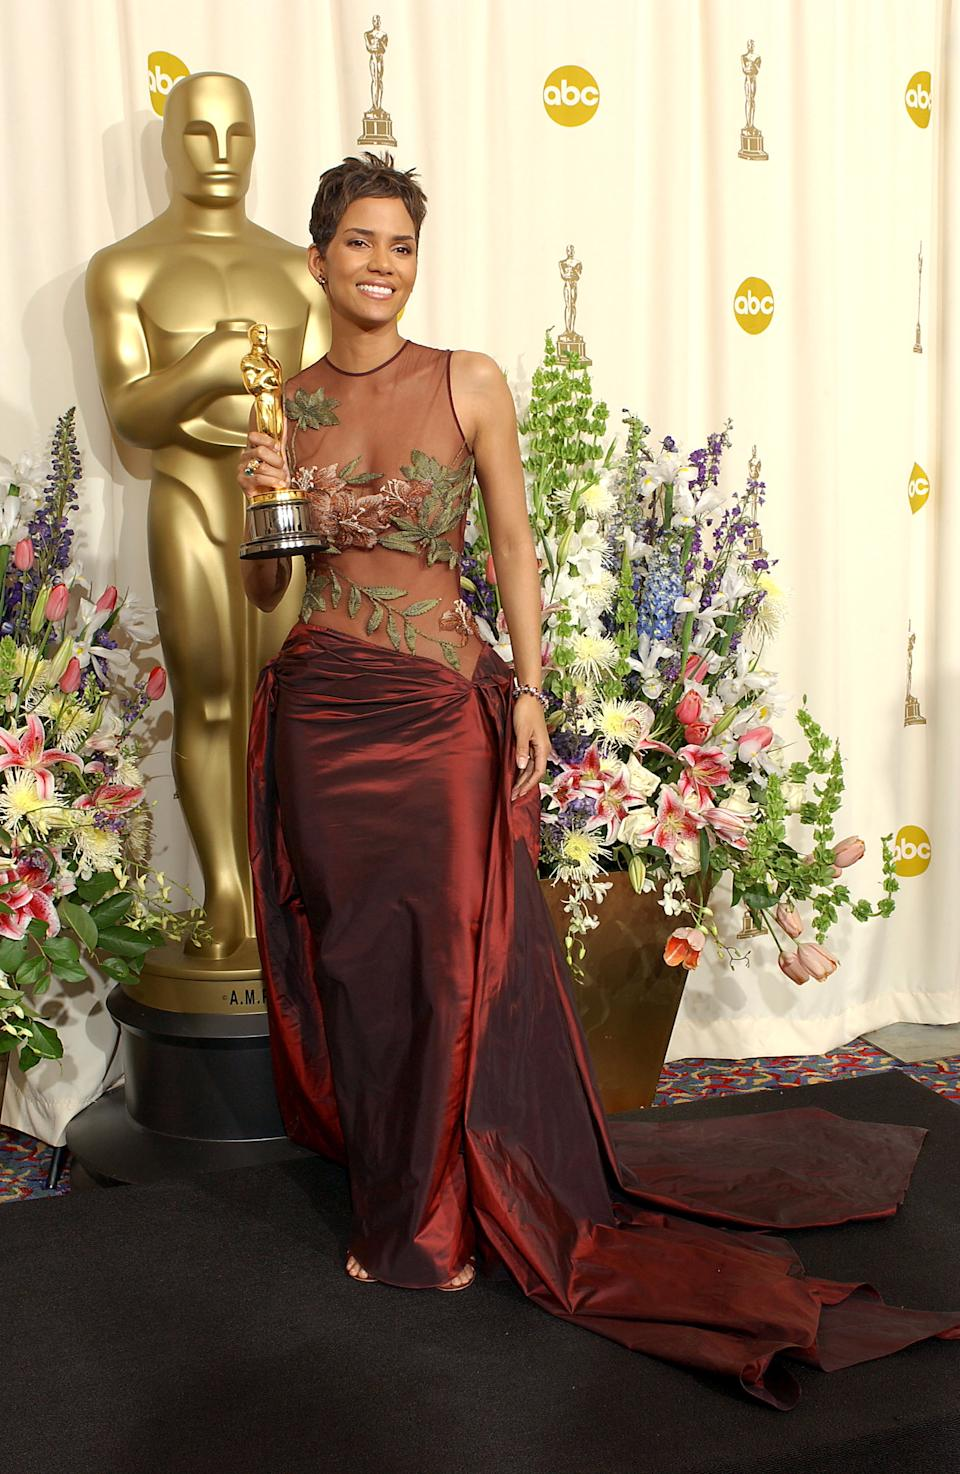 """<p>Berry became the first woman of colour to take home the Best Actress for her role in the gritty drama """"Monster's Ball."""" The history-making win, while wearing the strategically embroidered mesh gown, skyrocketed Elie Saab to international fame, putting the Lebanese designer on the map as the go-to brand for head-turning couture.</p>"""